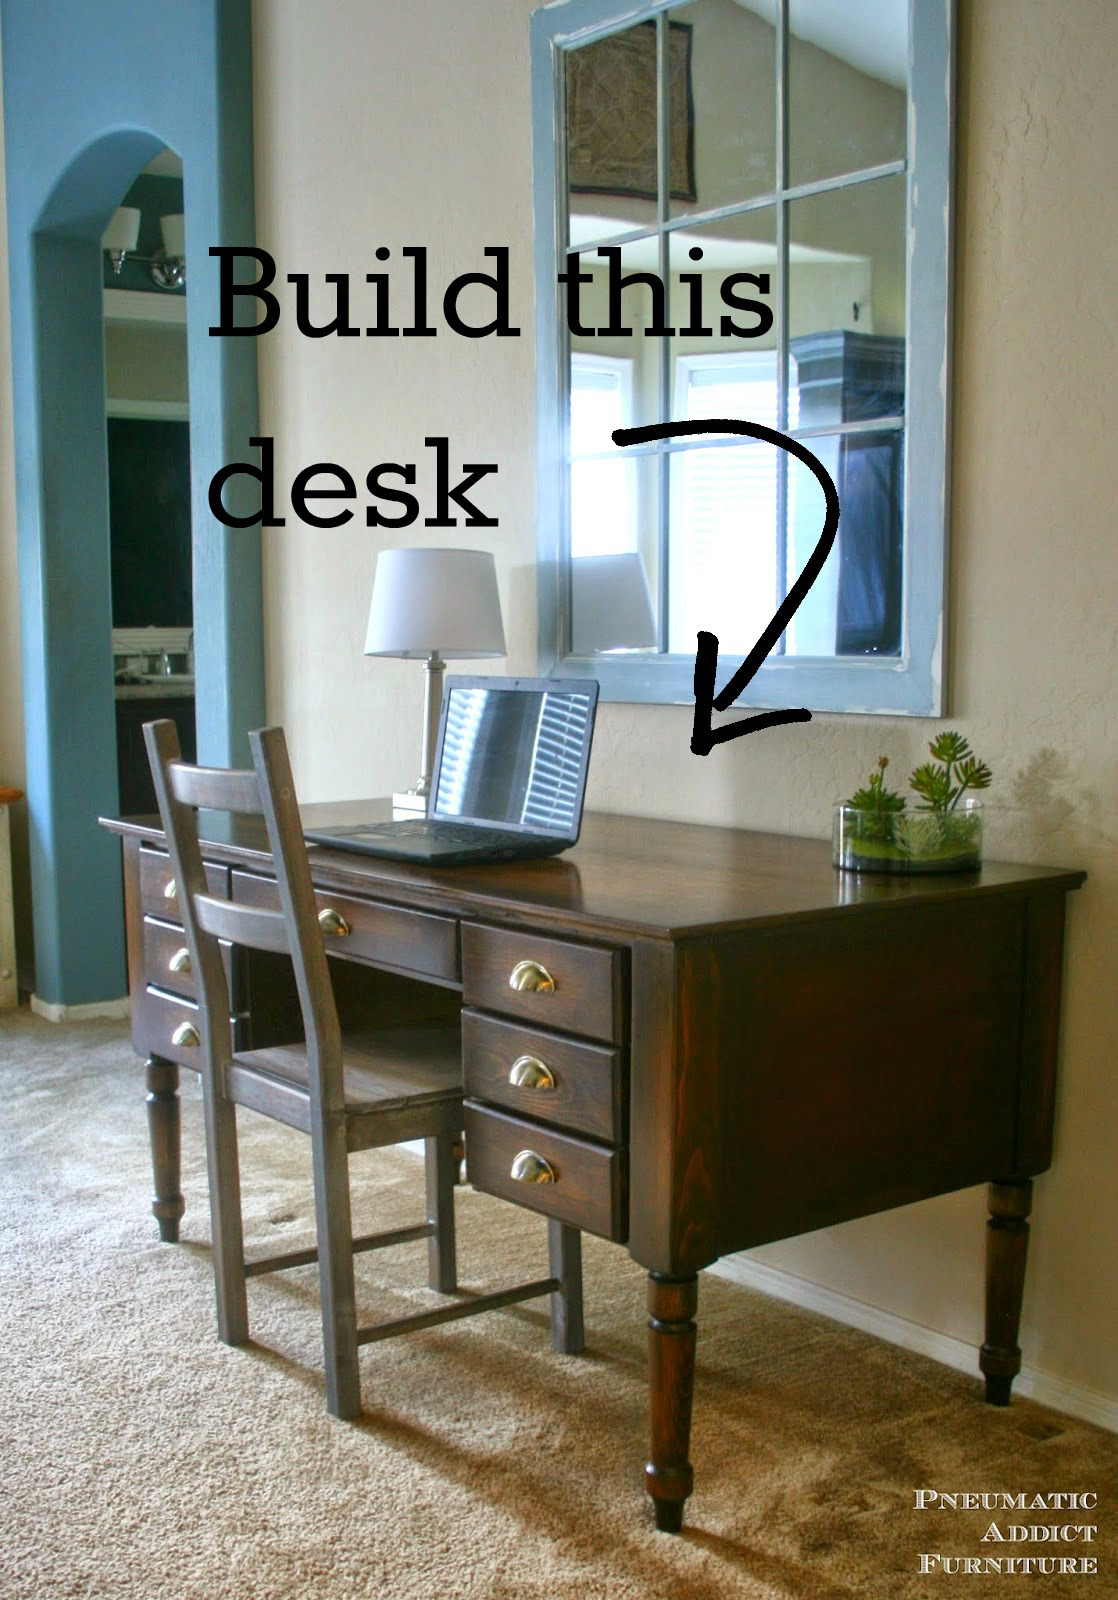 tradtitional pottery barn desk knock off tutorial